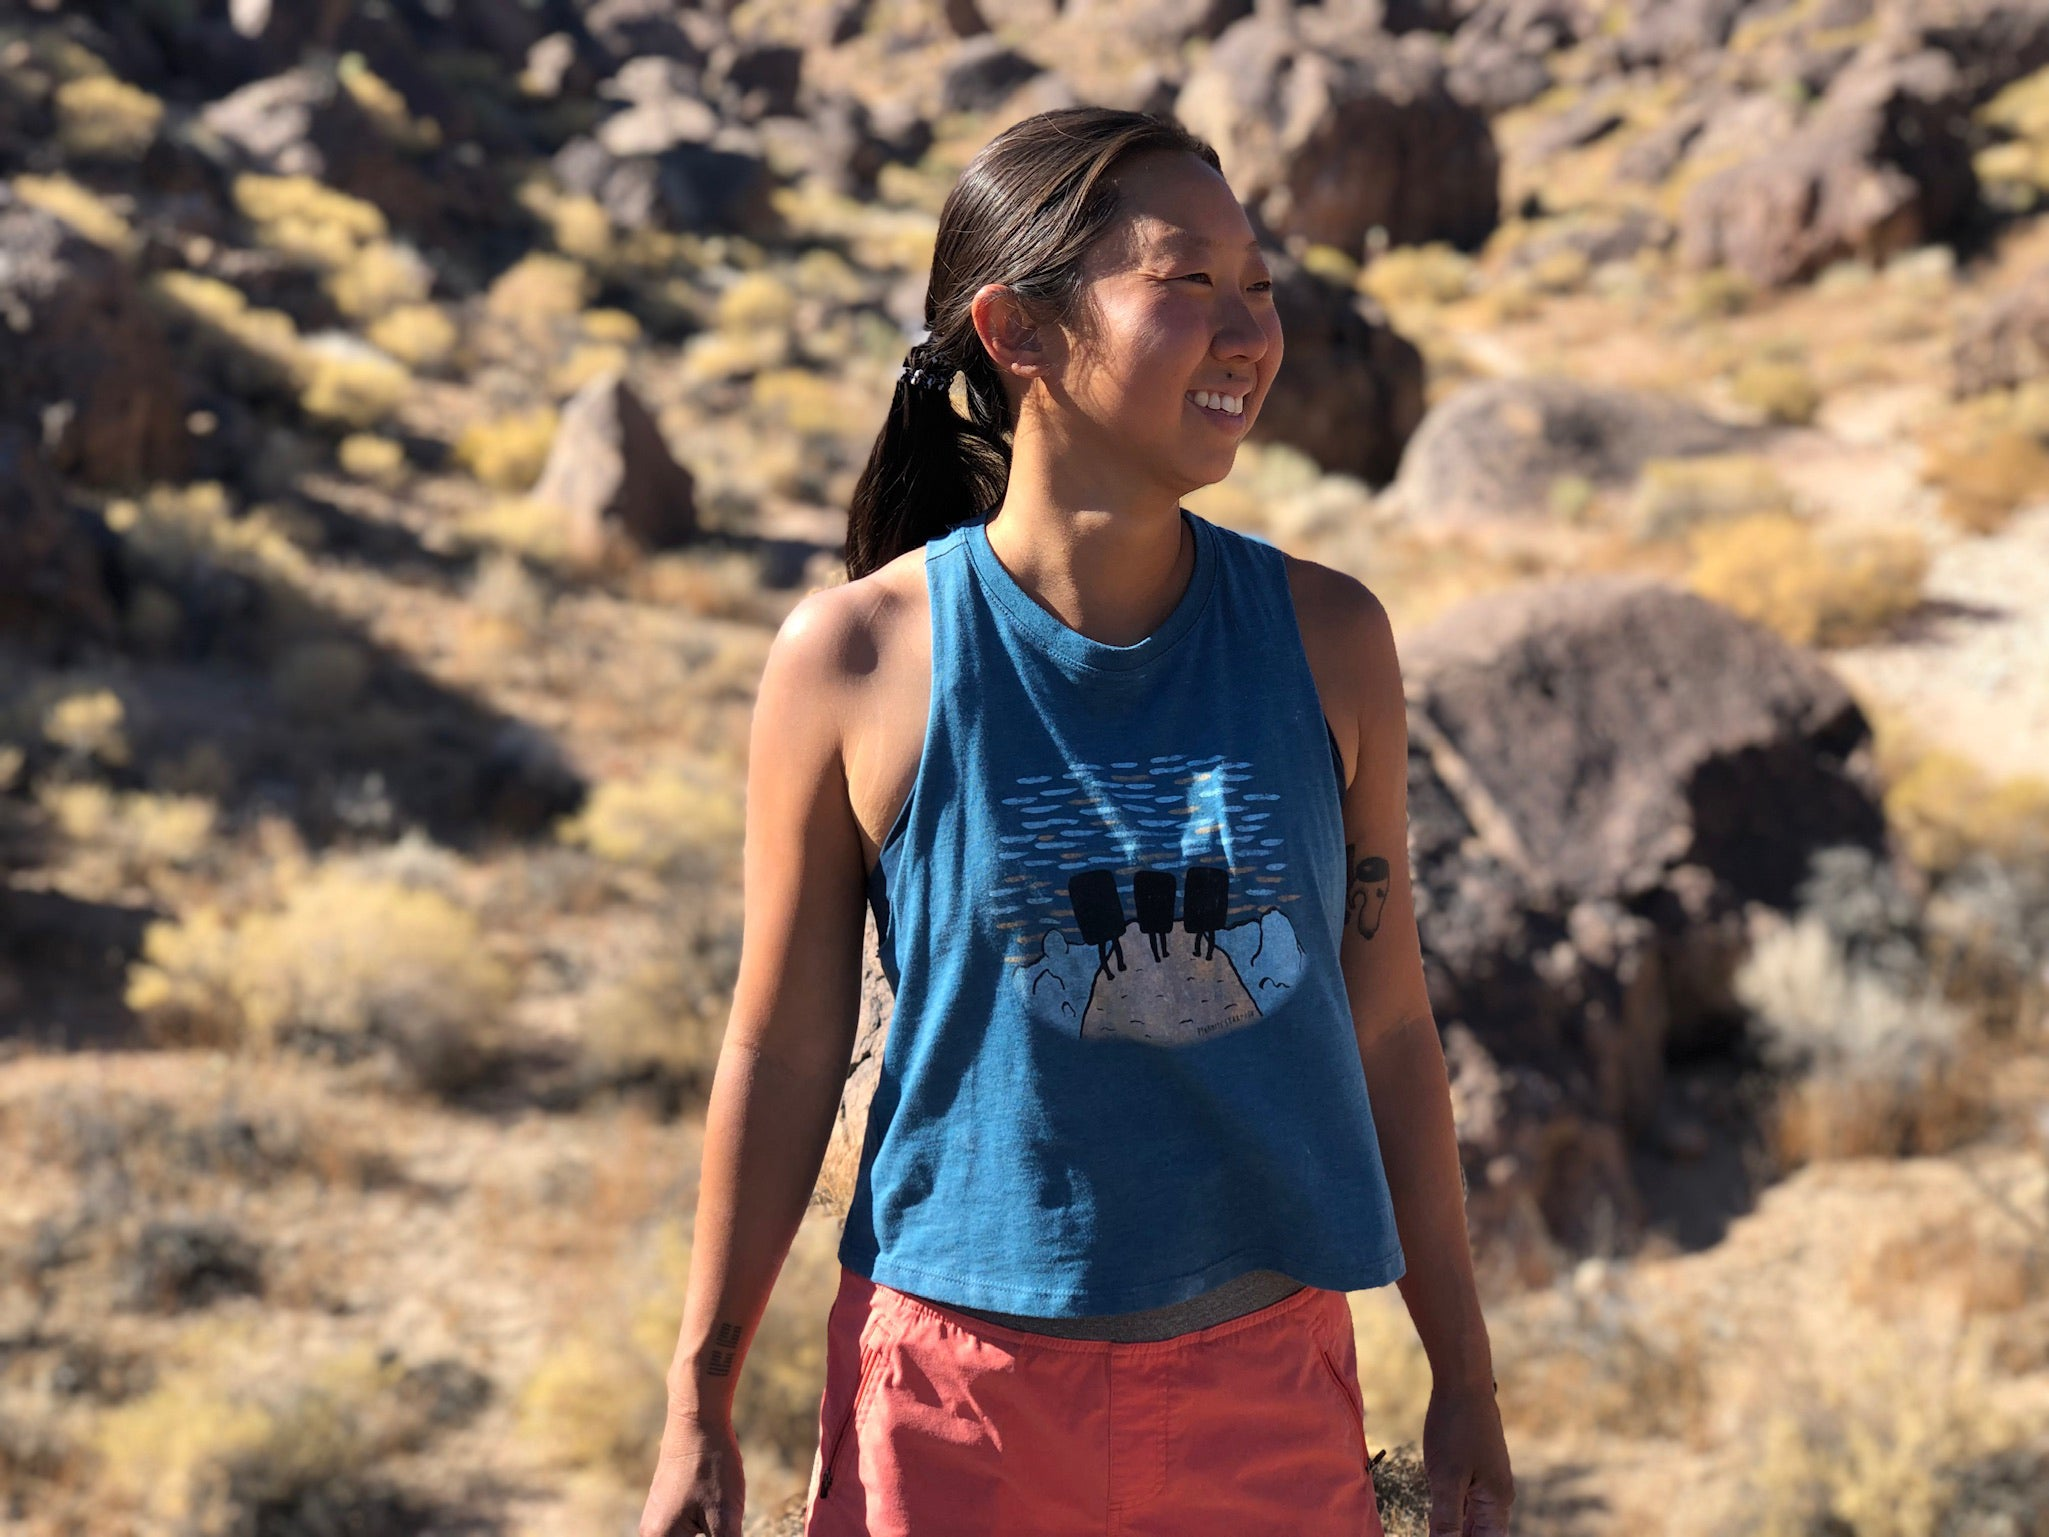 Leslie Kim, owner/founder of woman owned climbing company Dynamite Starfish in Bishop, CA